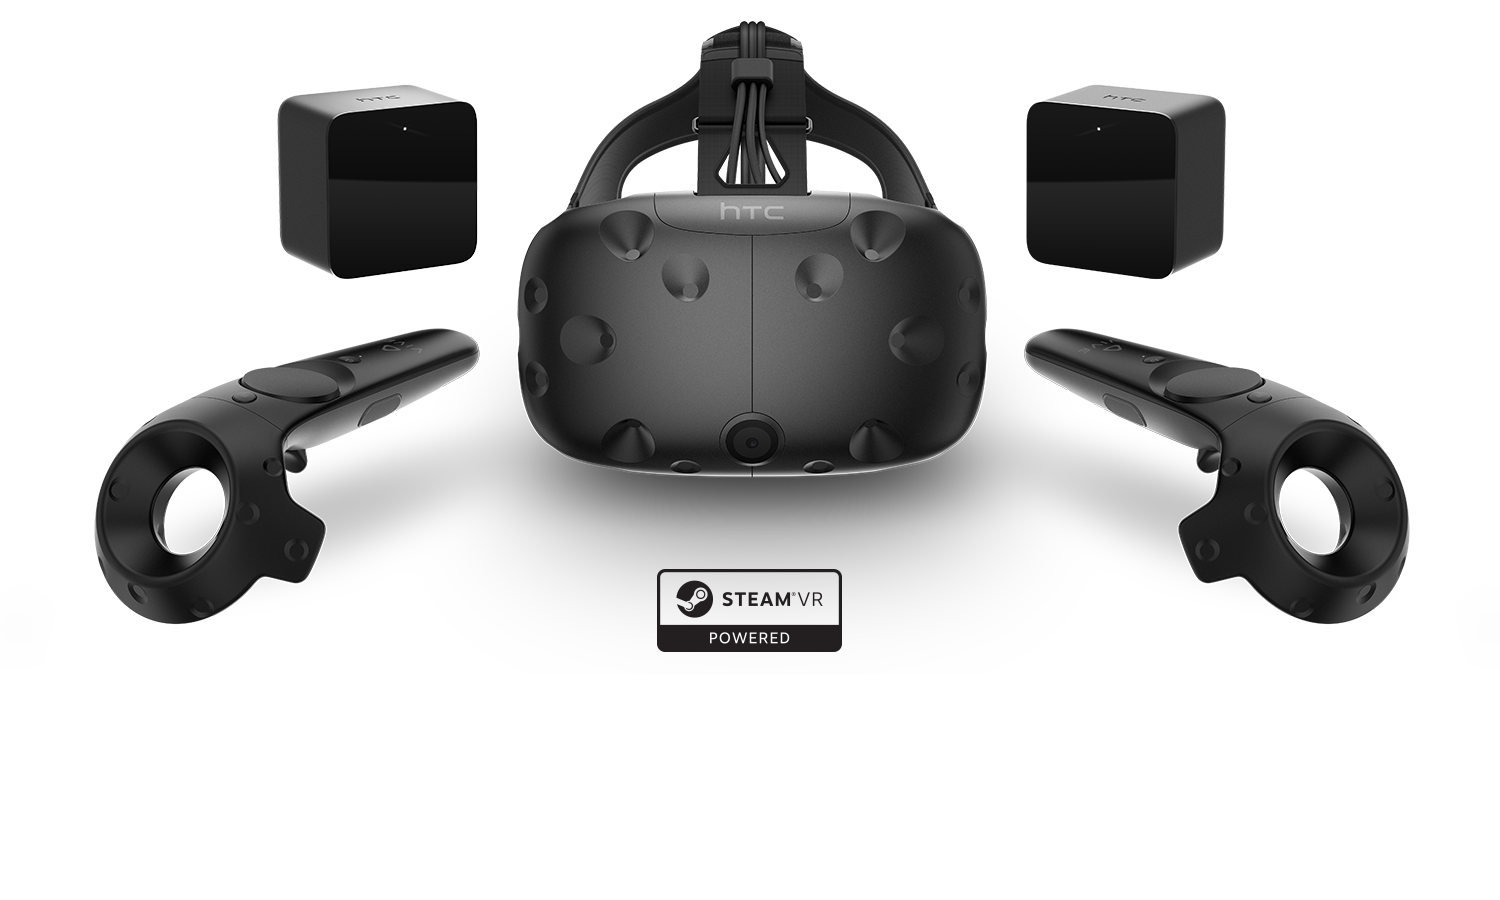 The HTC VIVE: An Honest Enthusiast's Review